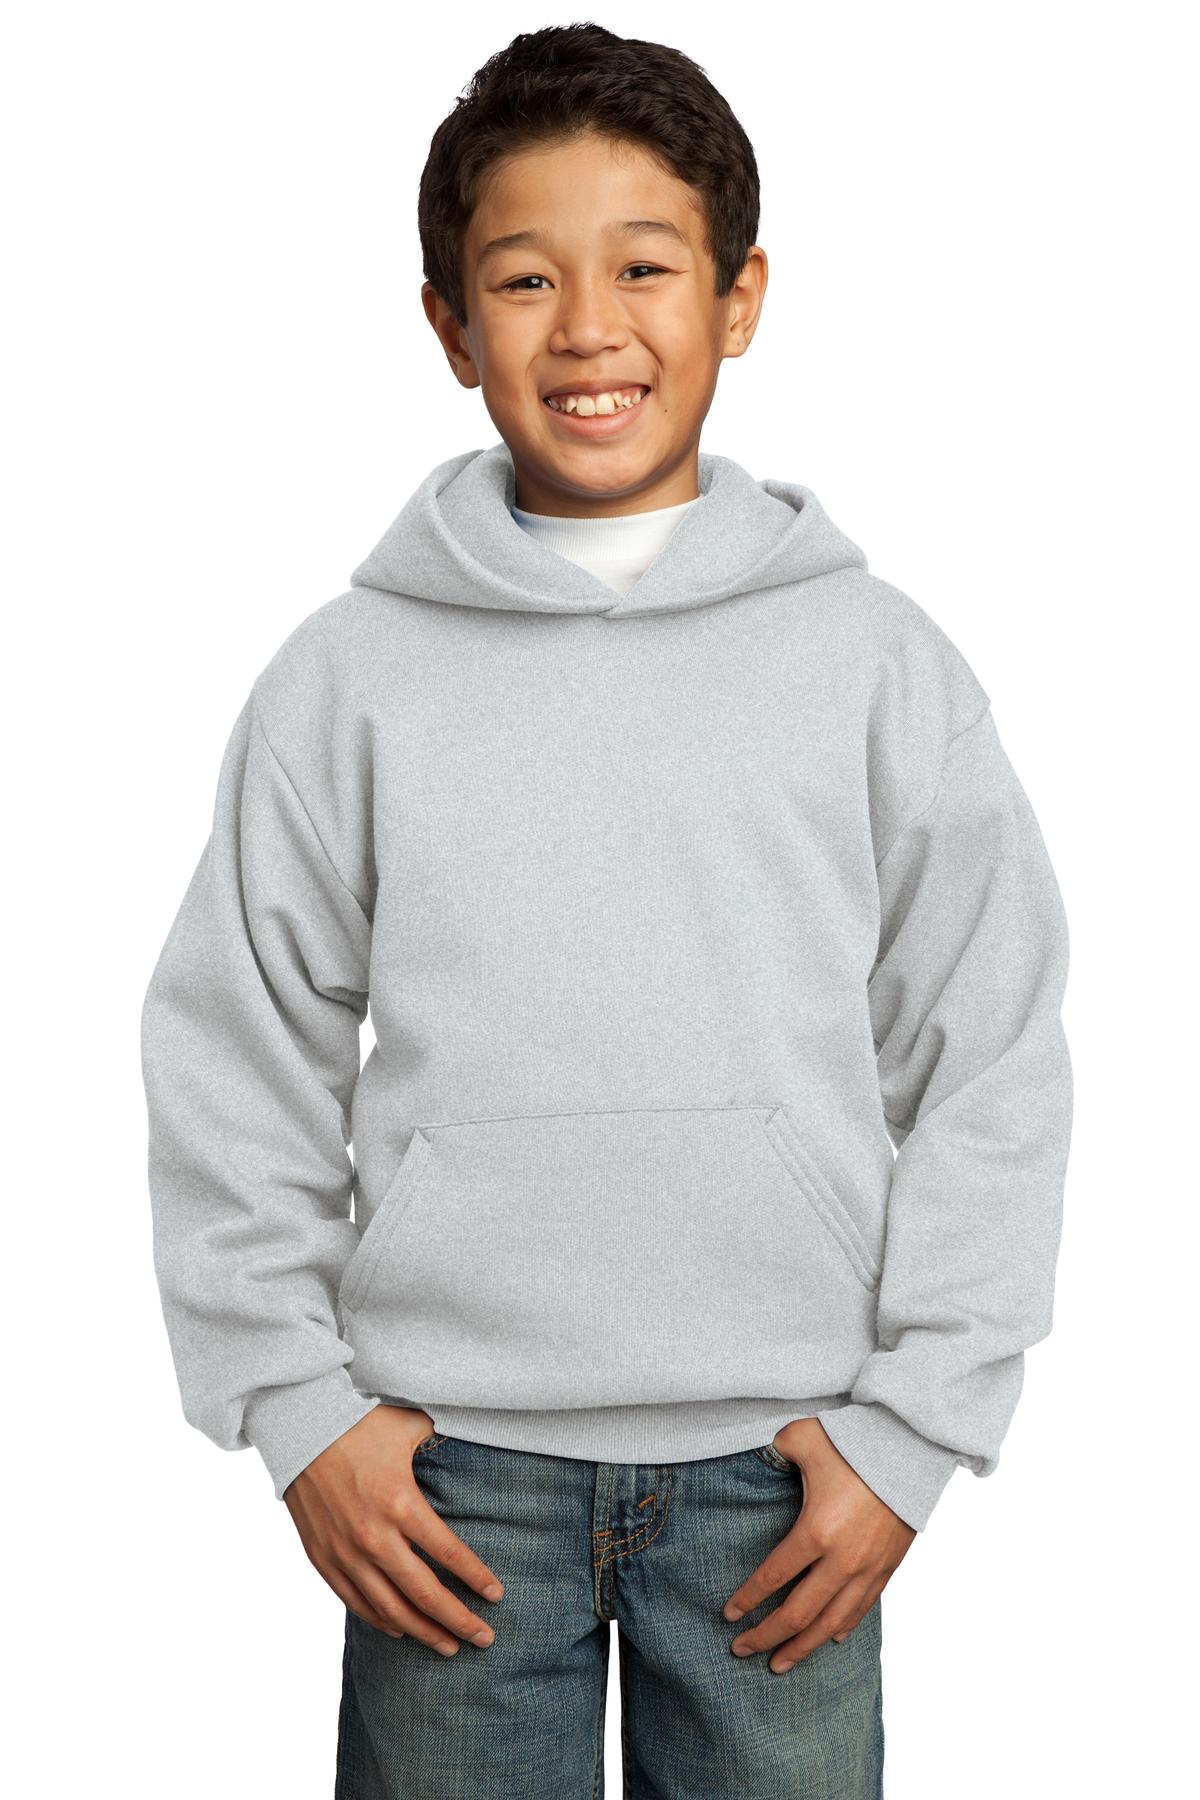 Port & Company ®  - Youth Core Fleece Pullover Hooded Sweatshirt.  PC90YH - Ash